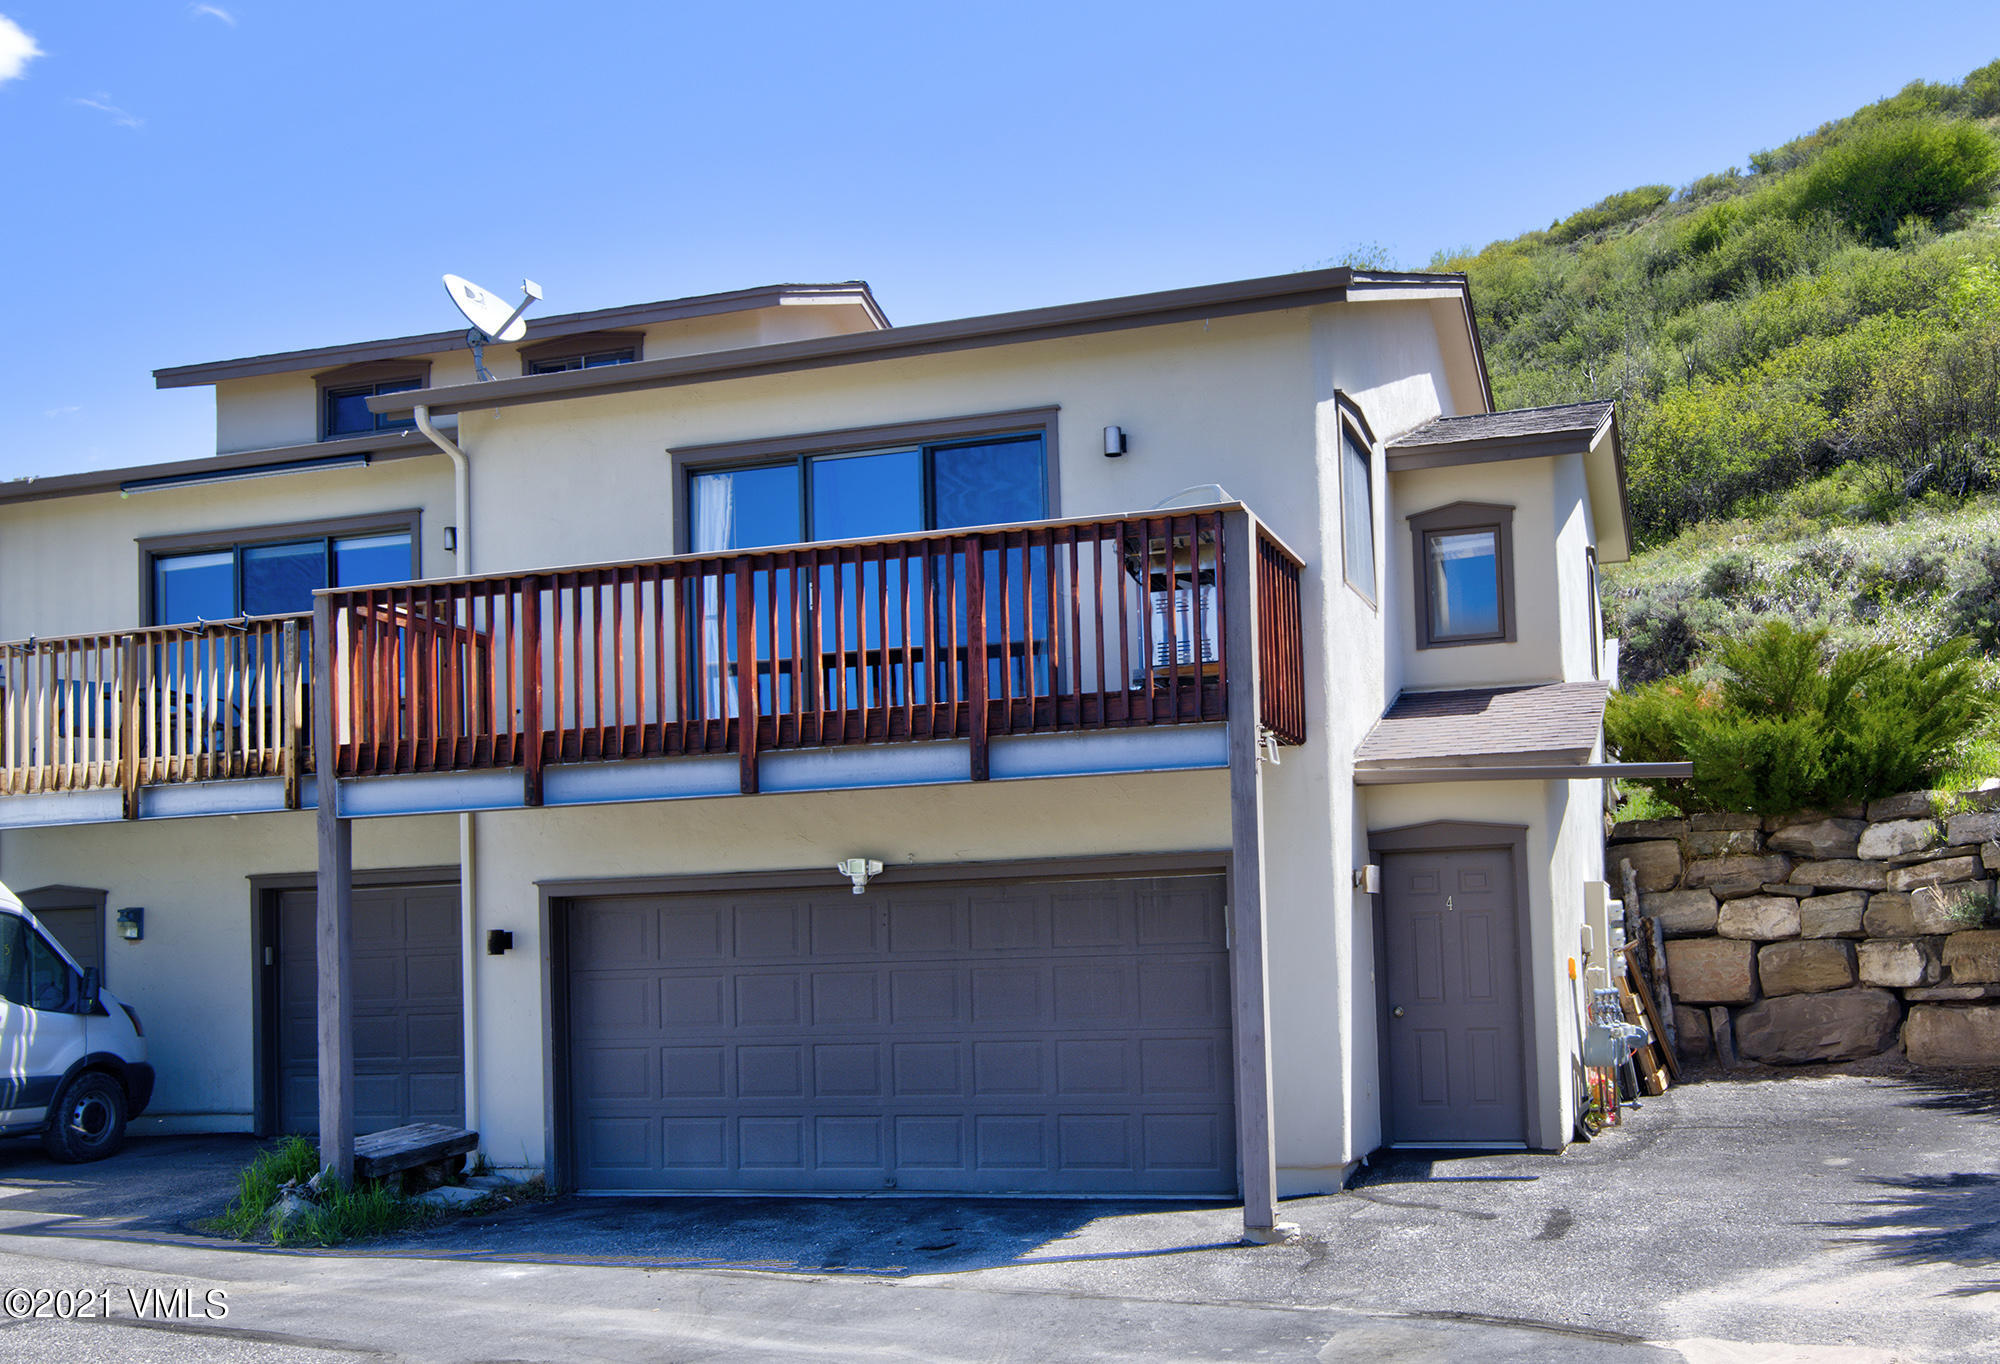 Very spacious 1 bedroom, 1 bath townhome in Wildwood with a 2 car garage, large, private patio and a front deck to sit and feel like you are on top of the world.  This is an excellent opportunity to own in the Vail Valley and the location is ideal, featuring big views of Beaver Creek and New York Mountain, sunshine and south facing.   Wildwood is just a short drive to the world class resorts of Beaver Creek and Vail - endless outdoor activities from your doorstep and close enough that you can enjoy all the conveniences of town. This is an end unit townhome, only 6 units in the complex, and has been meticulously maintained.  Remodel in 2017 includes new decks, hickory and tile flooring, countertops, water heater, refrigerator, washer.  OPEN HOUSE ON 7/11 from 11:00-2:00.